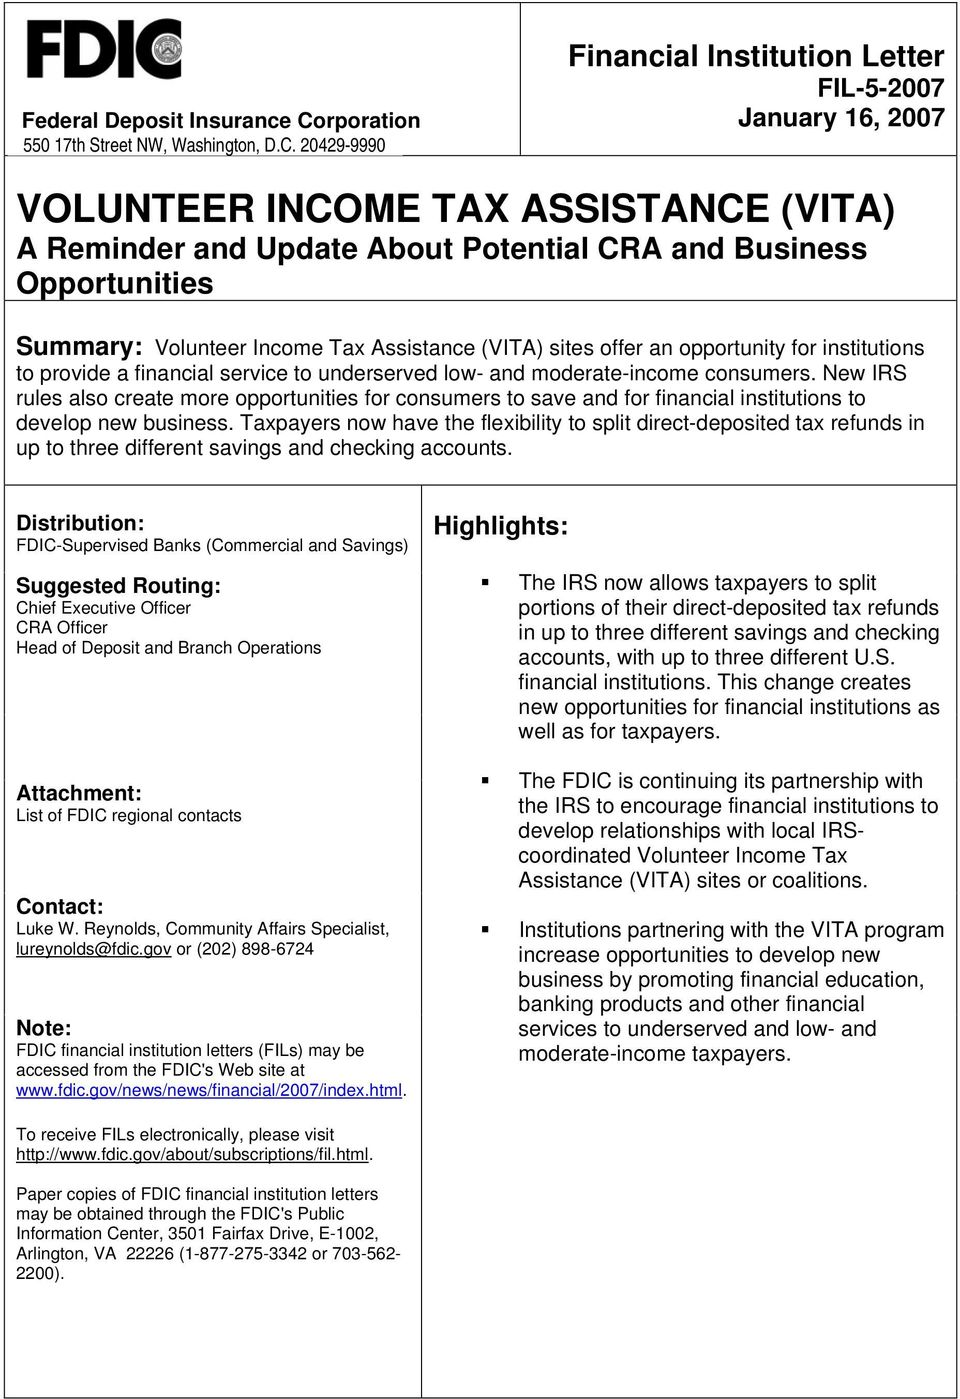 20429-9990 Financial Institution Letter FIL-5-2007 January 16, 2007 VOLUNTEER INCOME TAX ASSISTANCE (VITA) A Reminder and Update About Potential CRA and Business Opportunities Summary: Volunteer